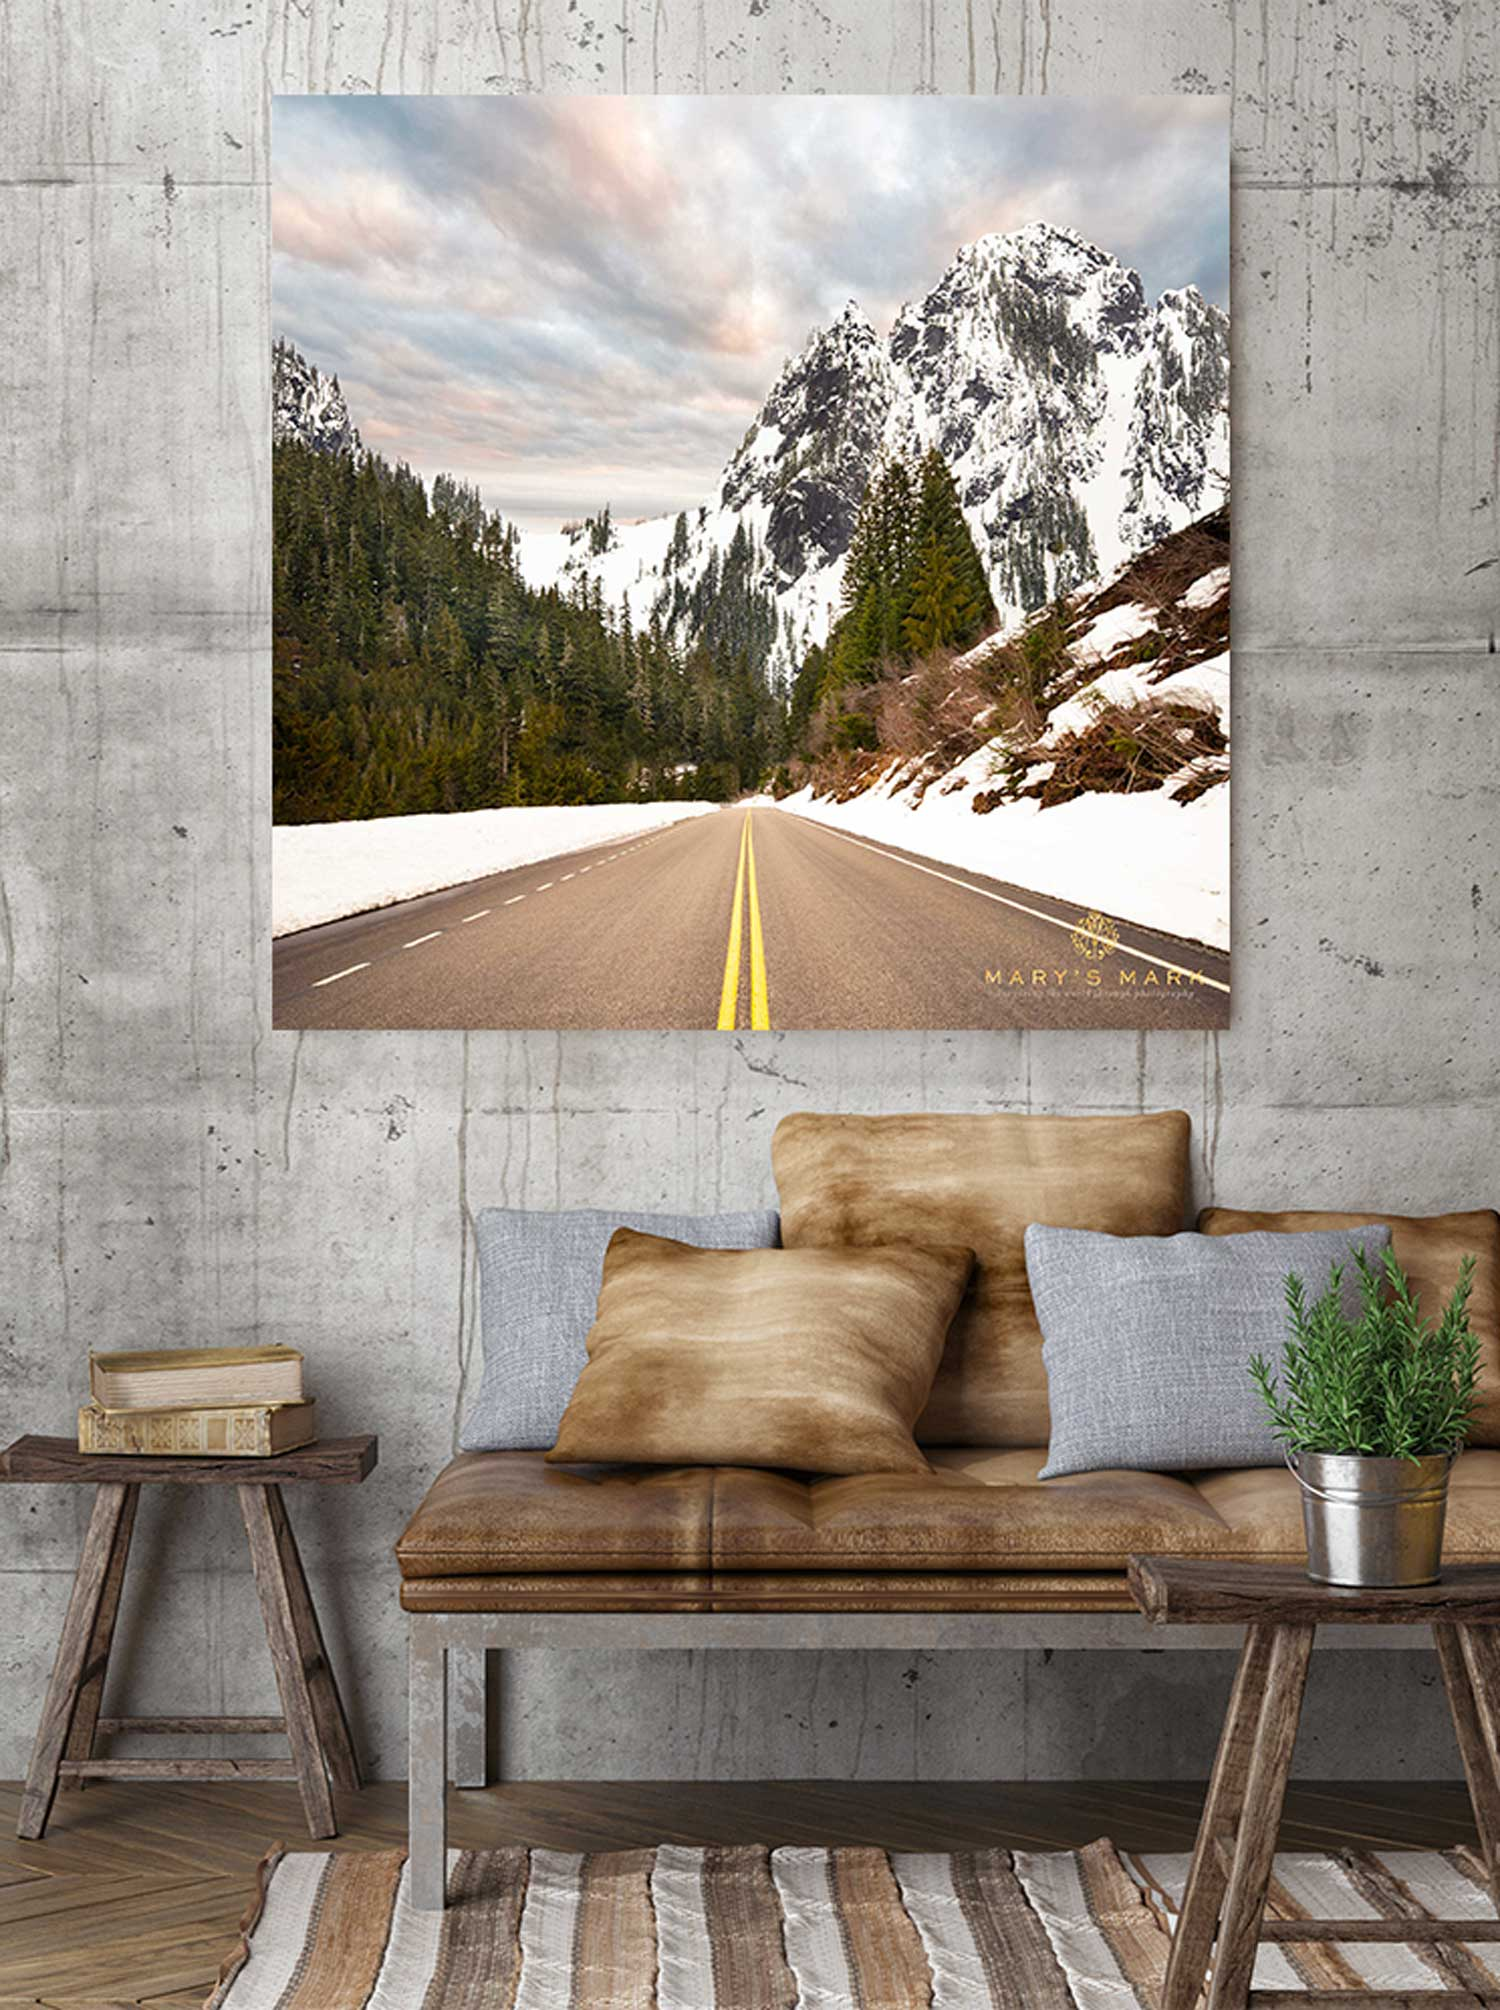 Roadway-to-Mountain-Washingto-by-Mary-Parkhill-of-Mary's-Mark-Photography.jpg